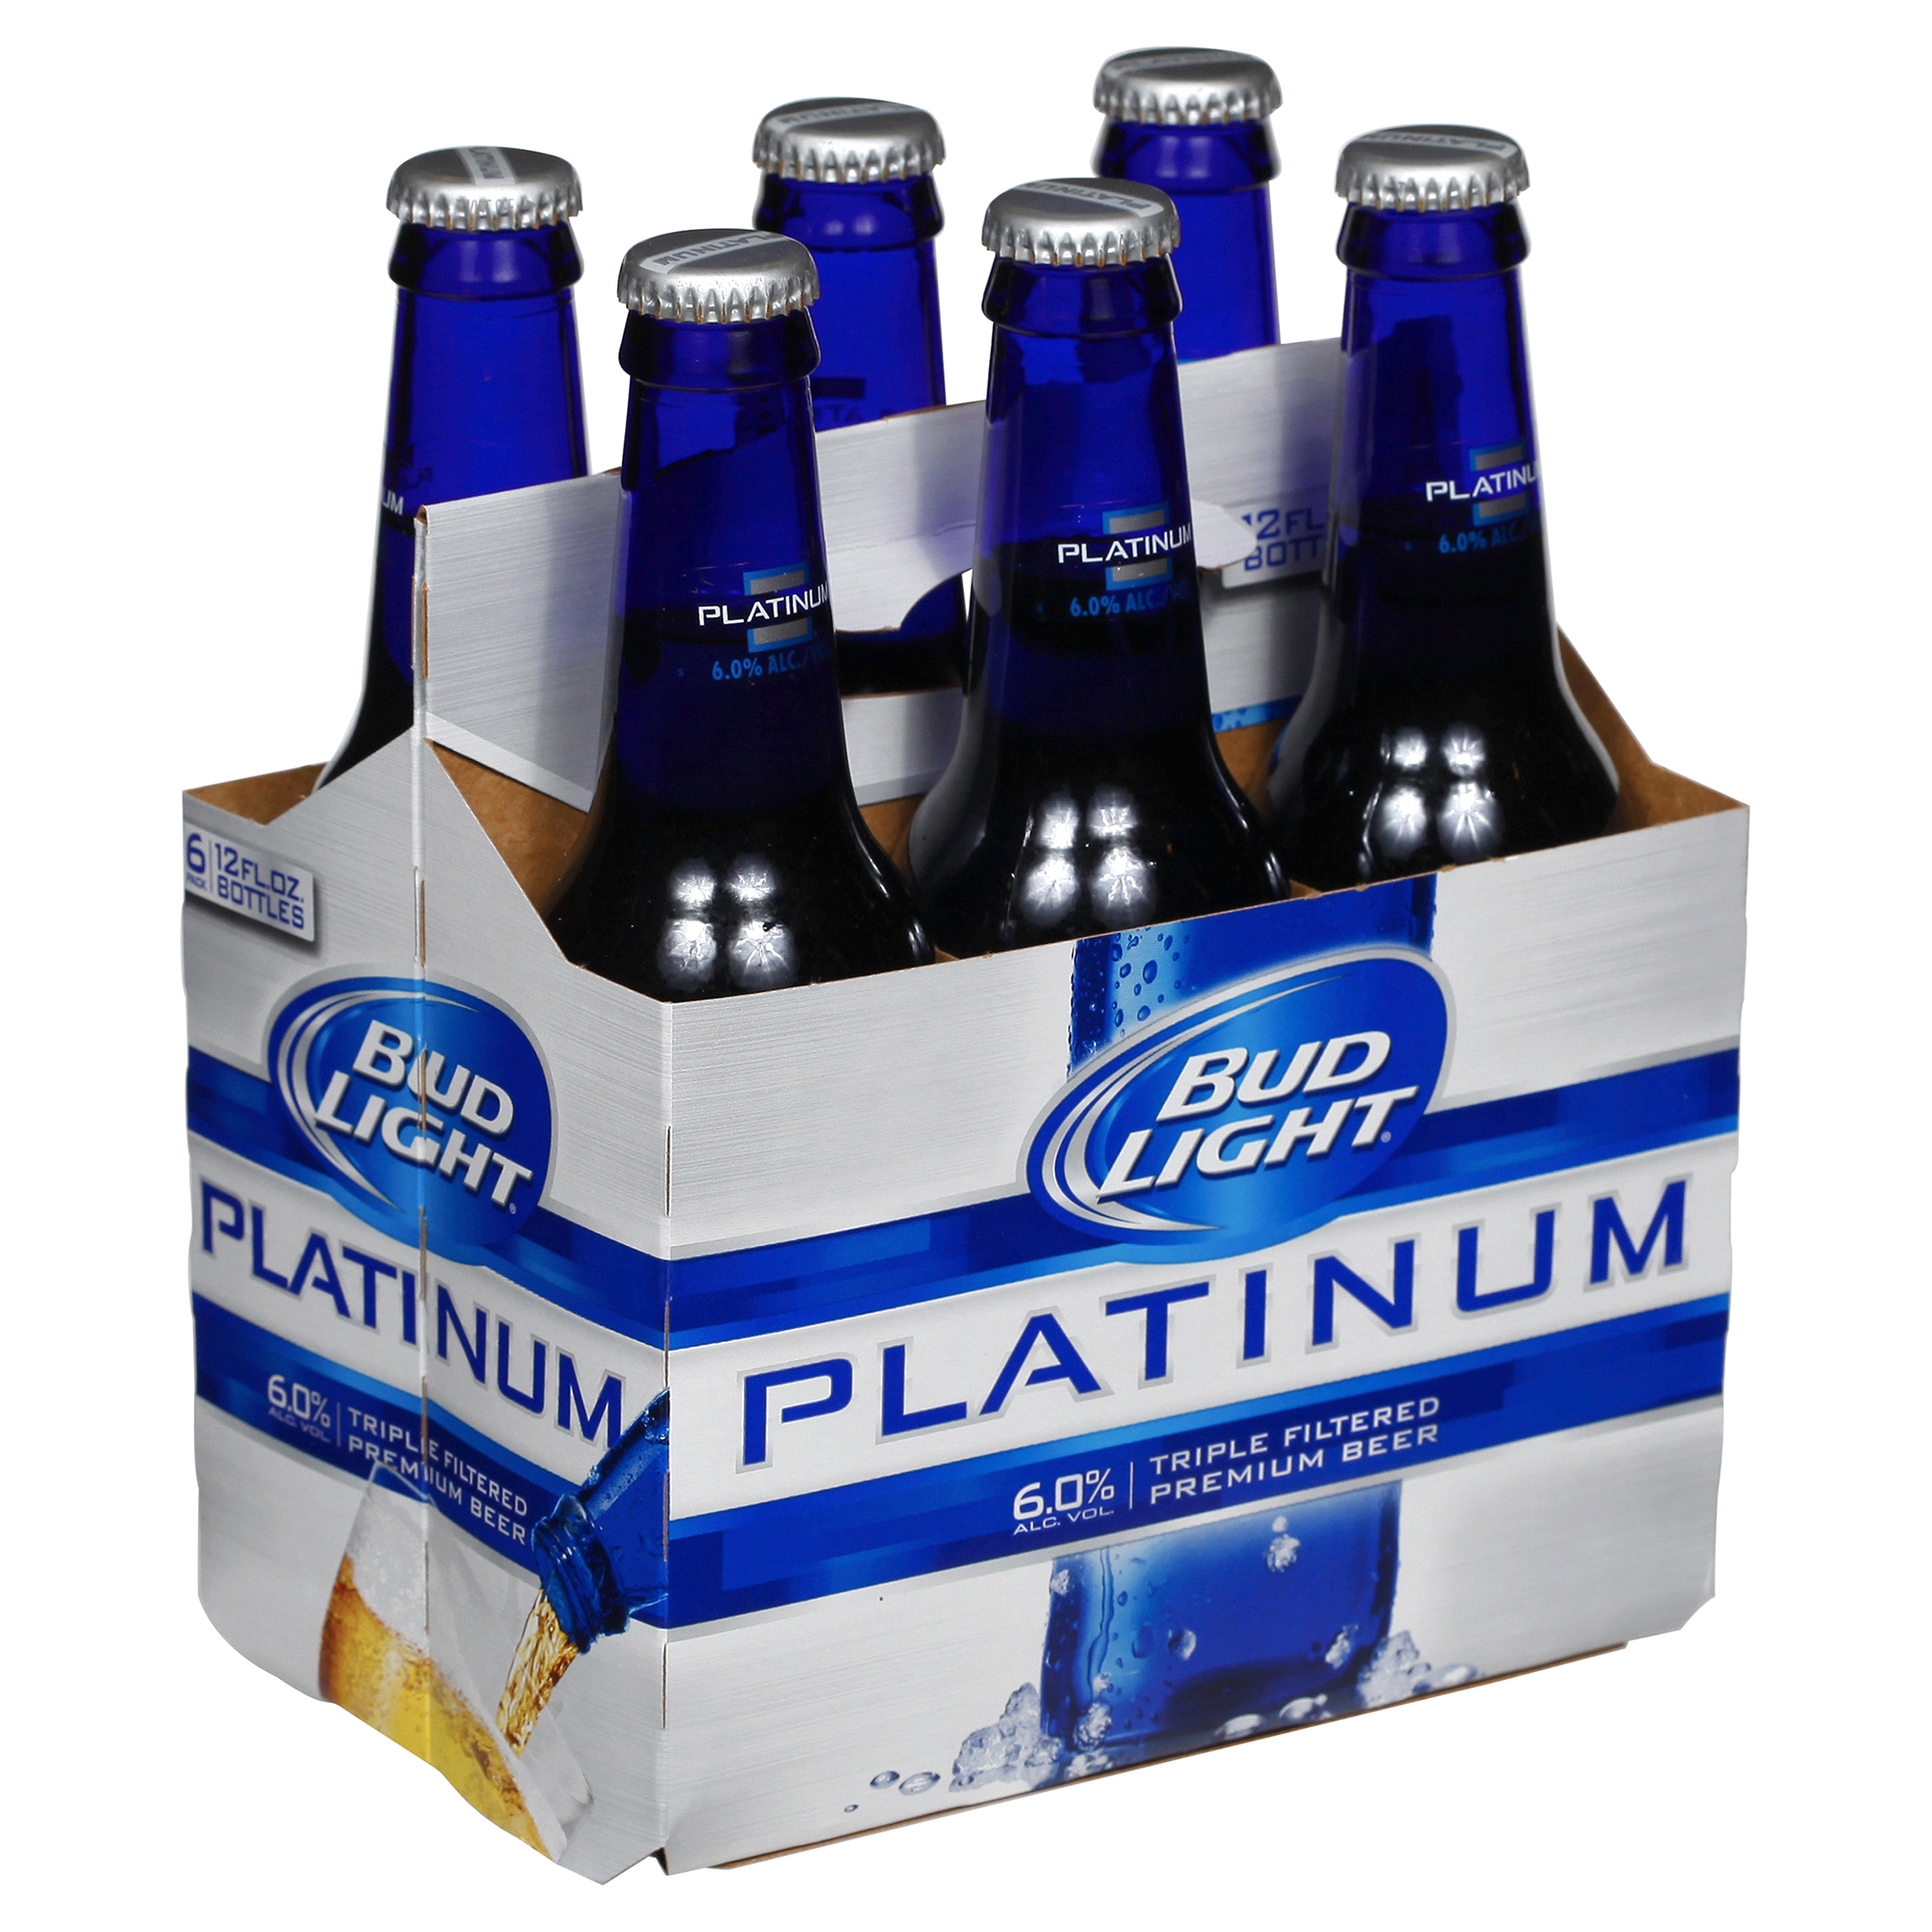 didn re chad z this the some it i my updated write opinion amazed by review beer feb bud how often note is t platinum m same basically text still light because reviews